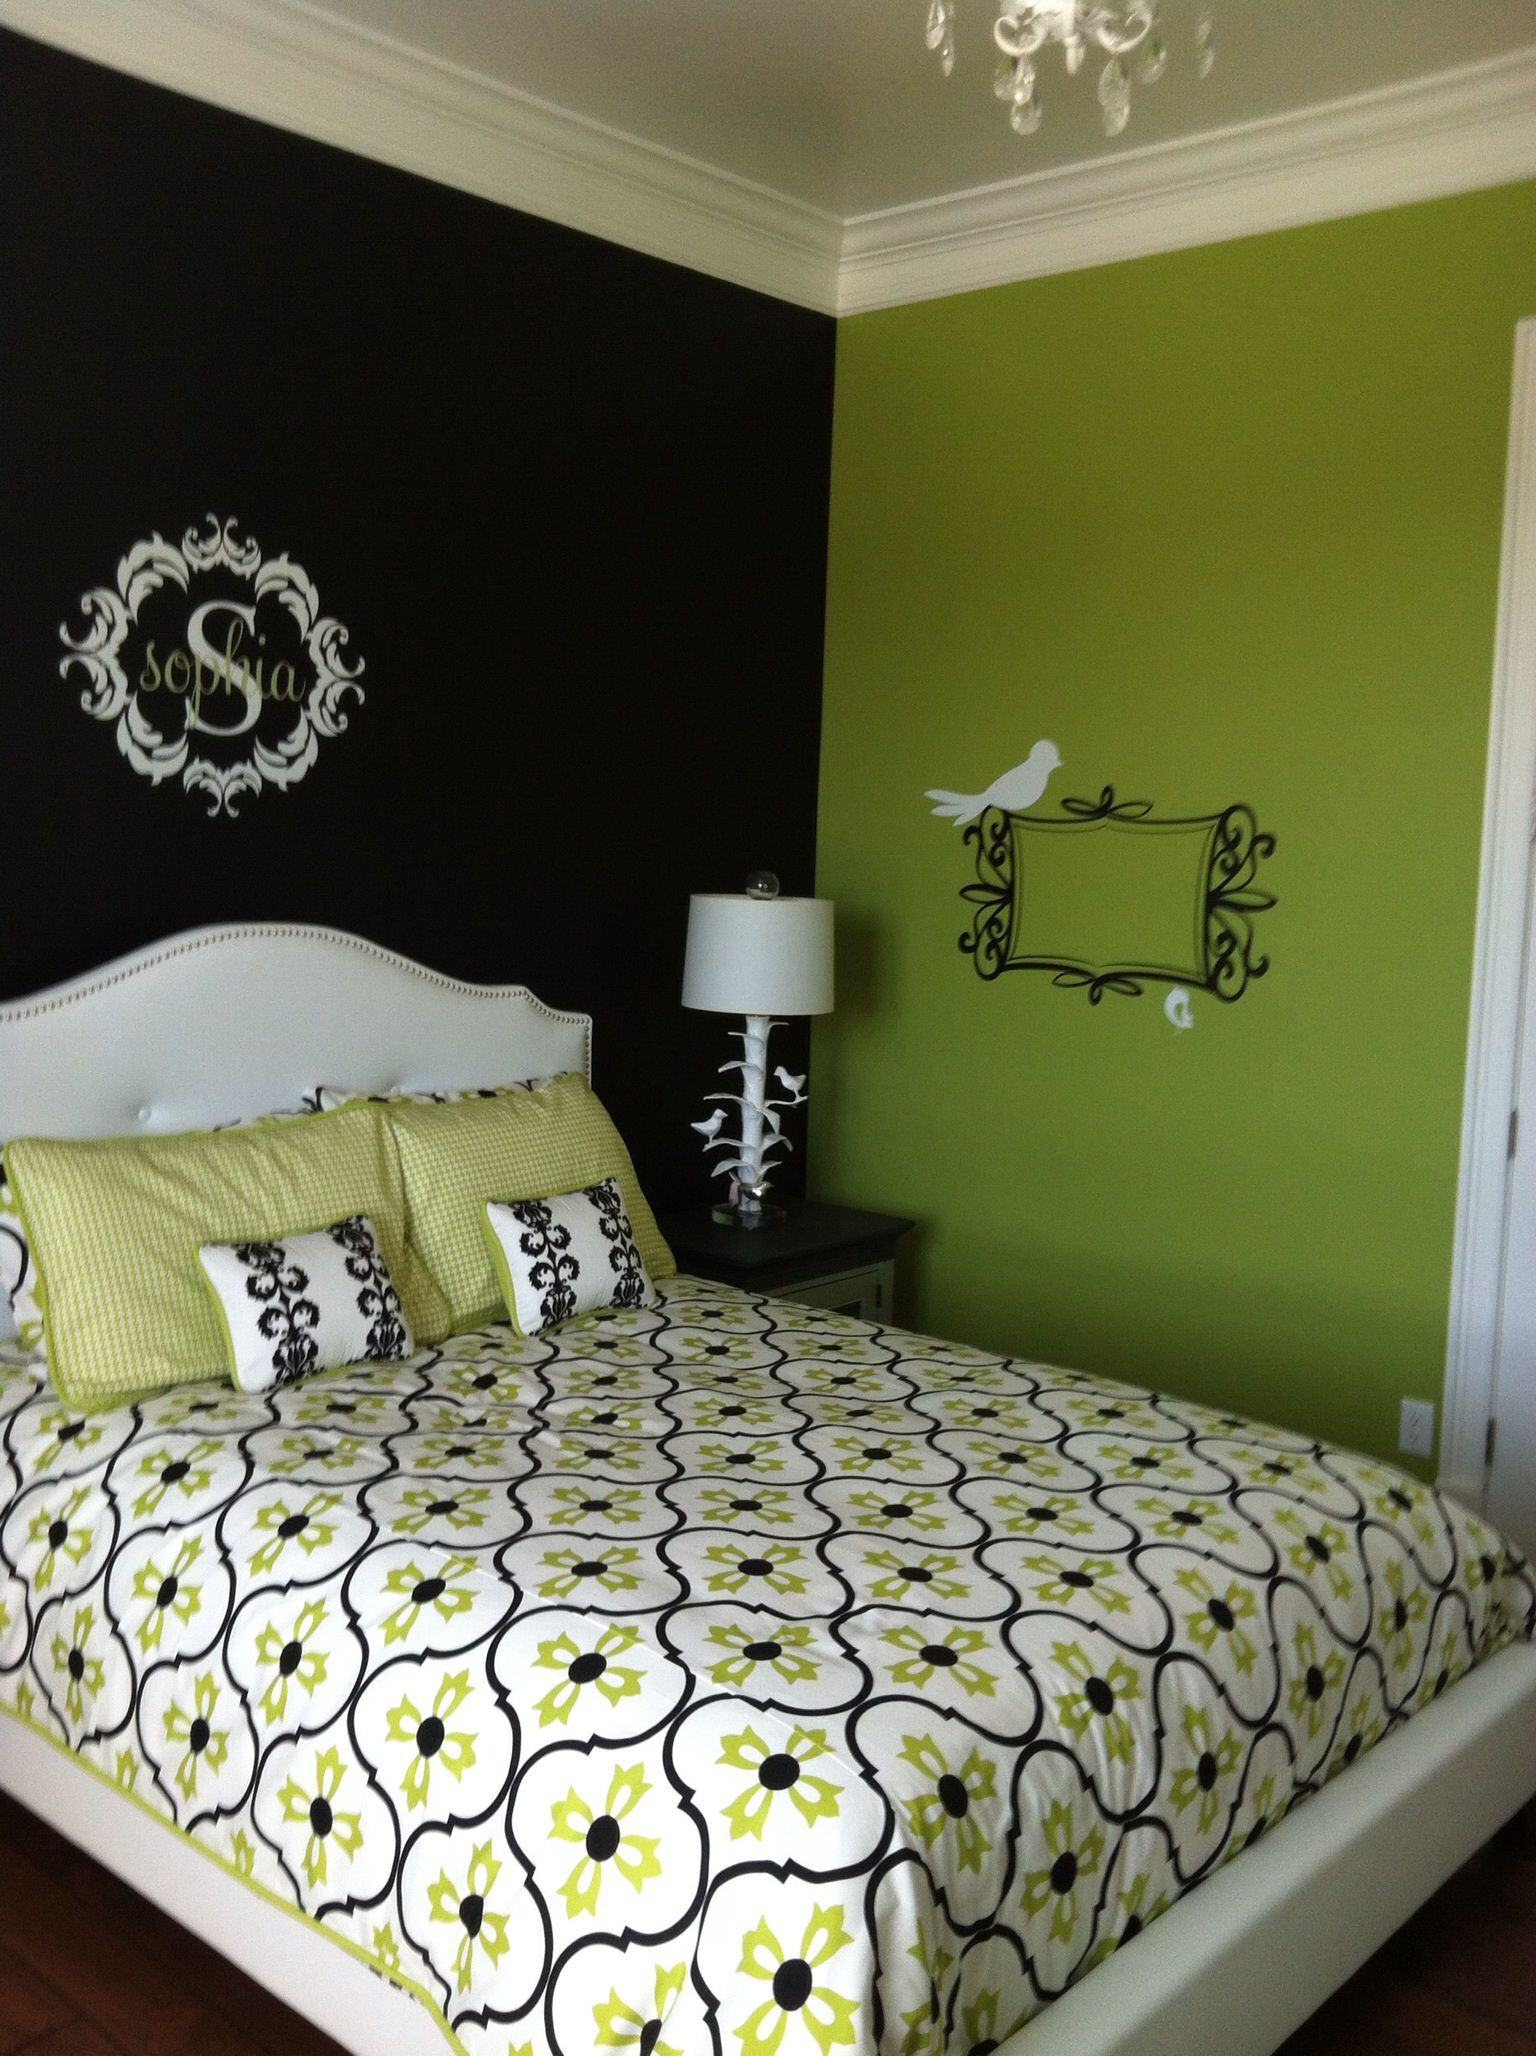 Pin By Debra R Smeltzer On If Walls Could Talk Green Bedroom Walls Lime Green Rooms Lime Green Bedrooms